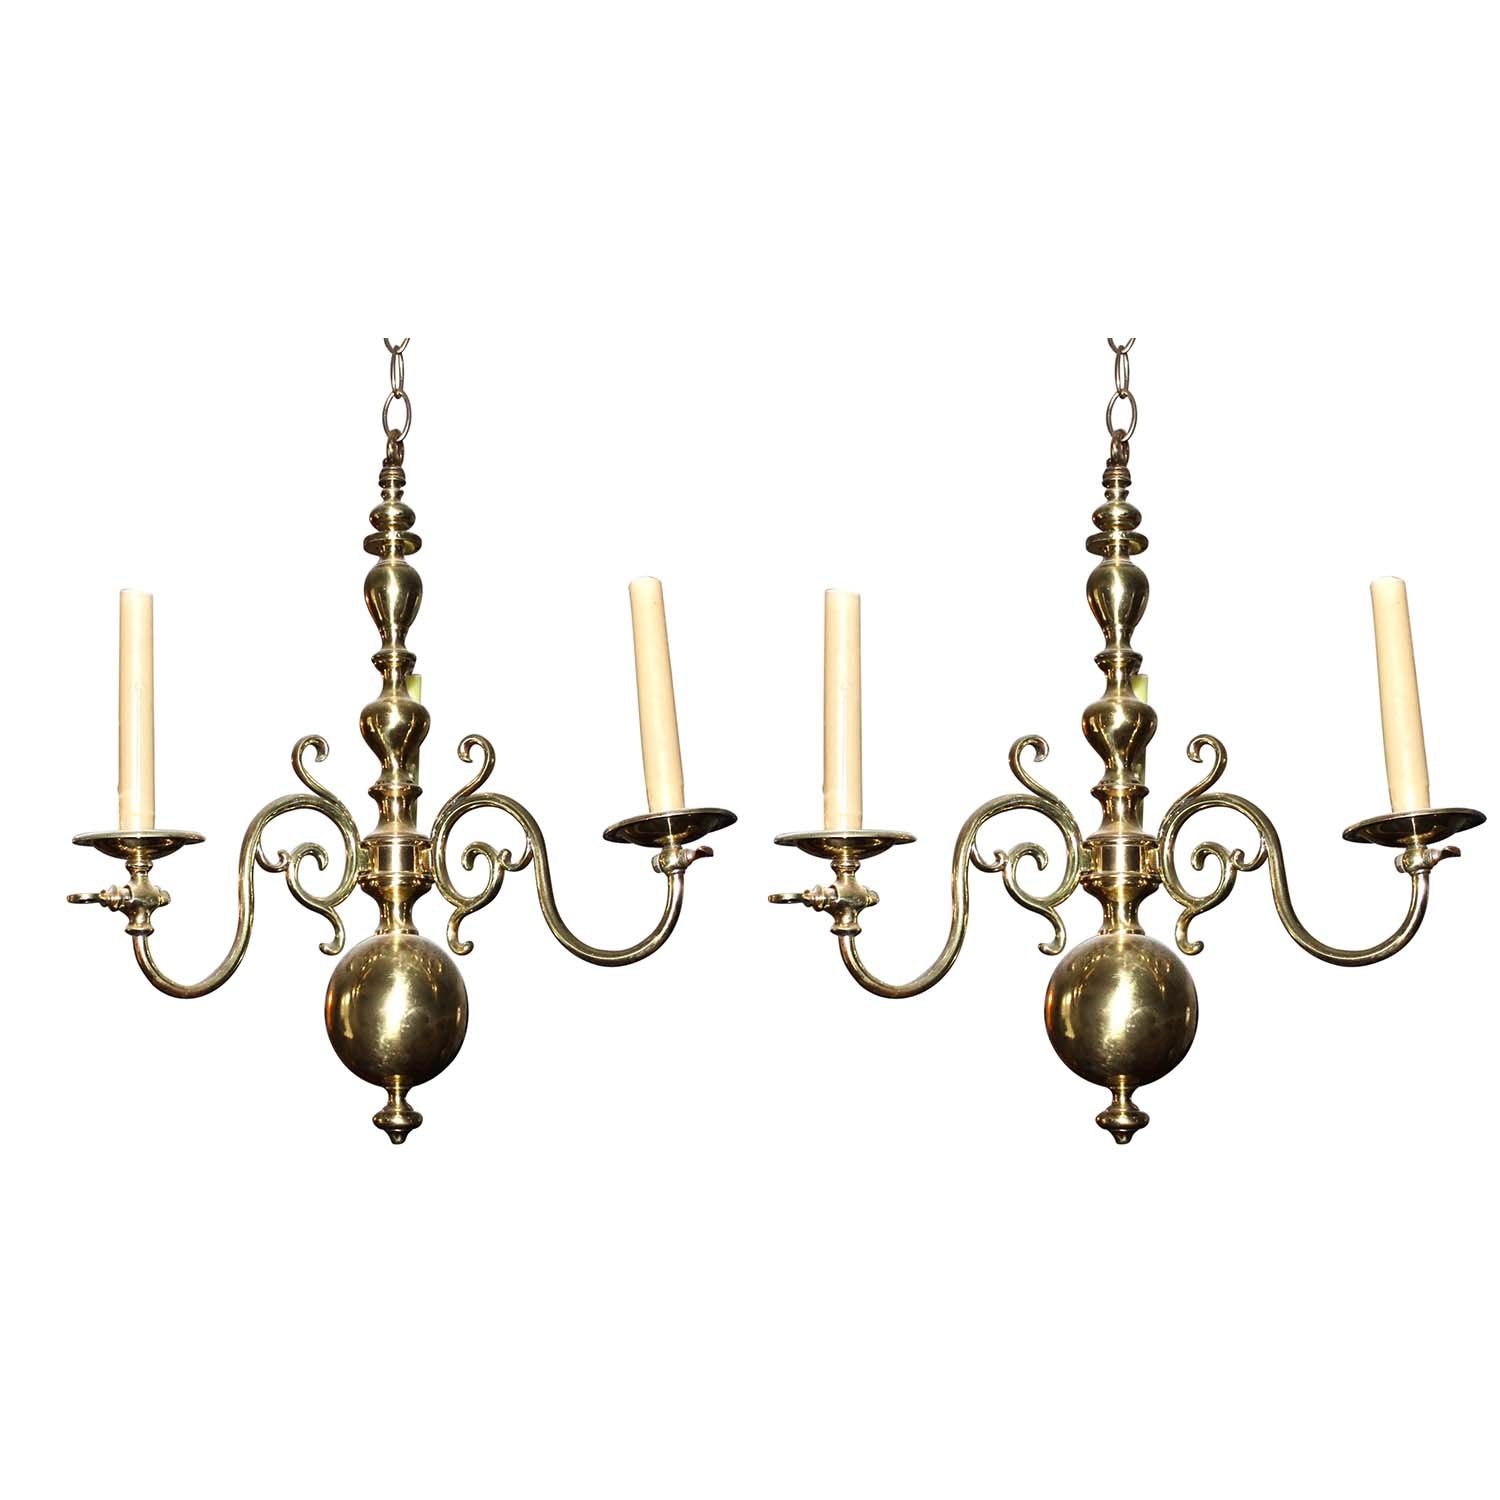 Federal Style Brass Gas Chandeliers, Early 20th Century